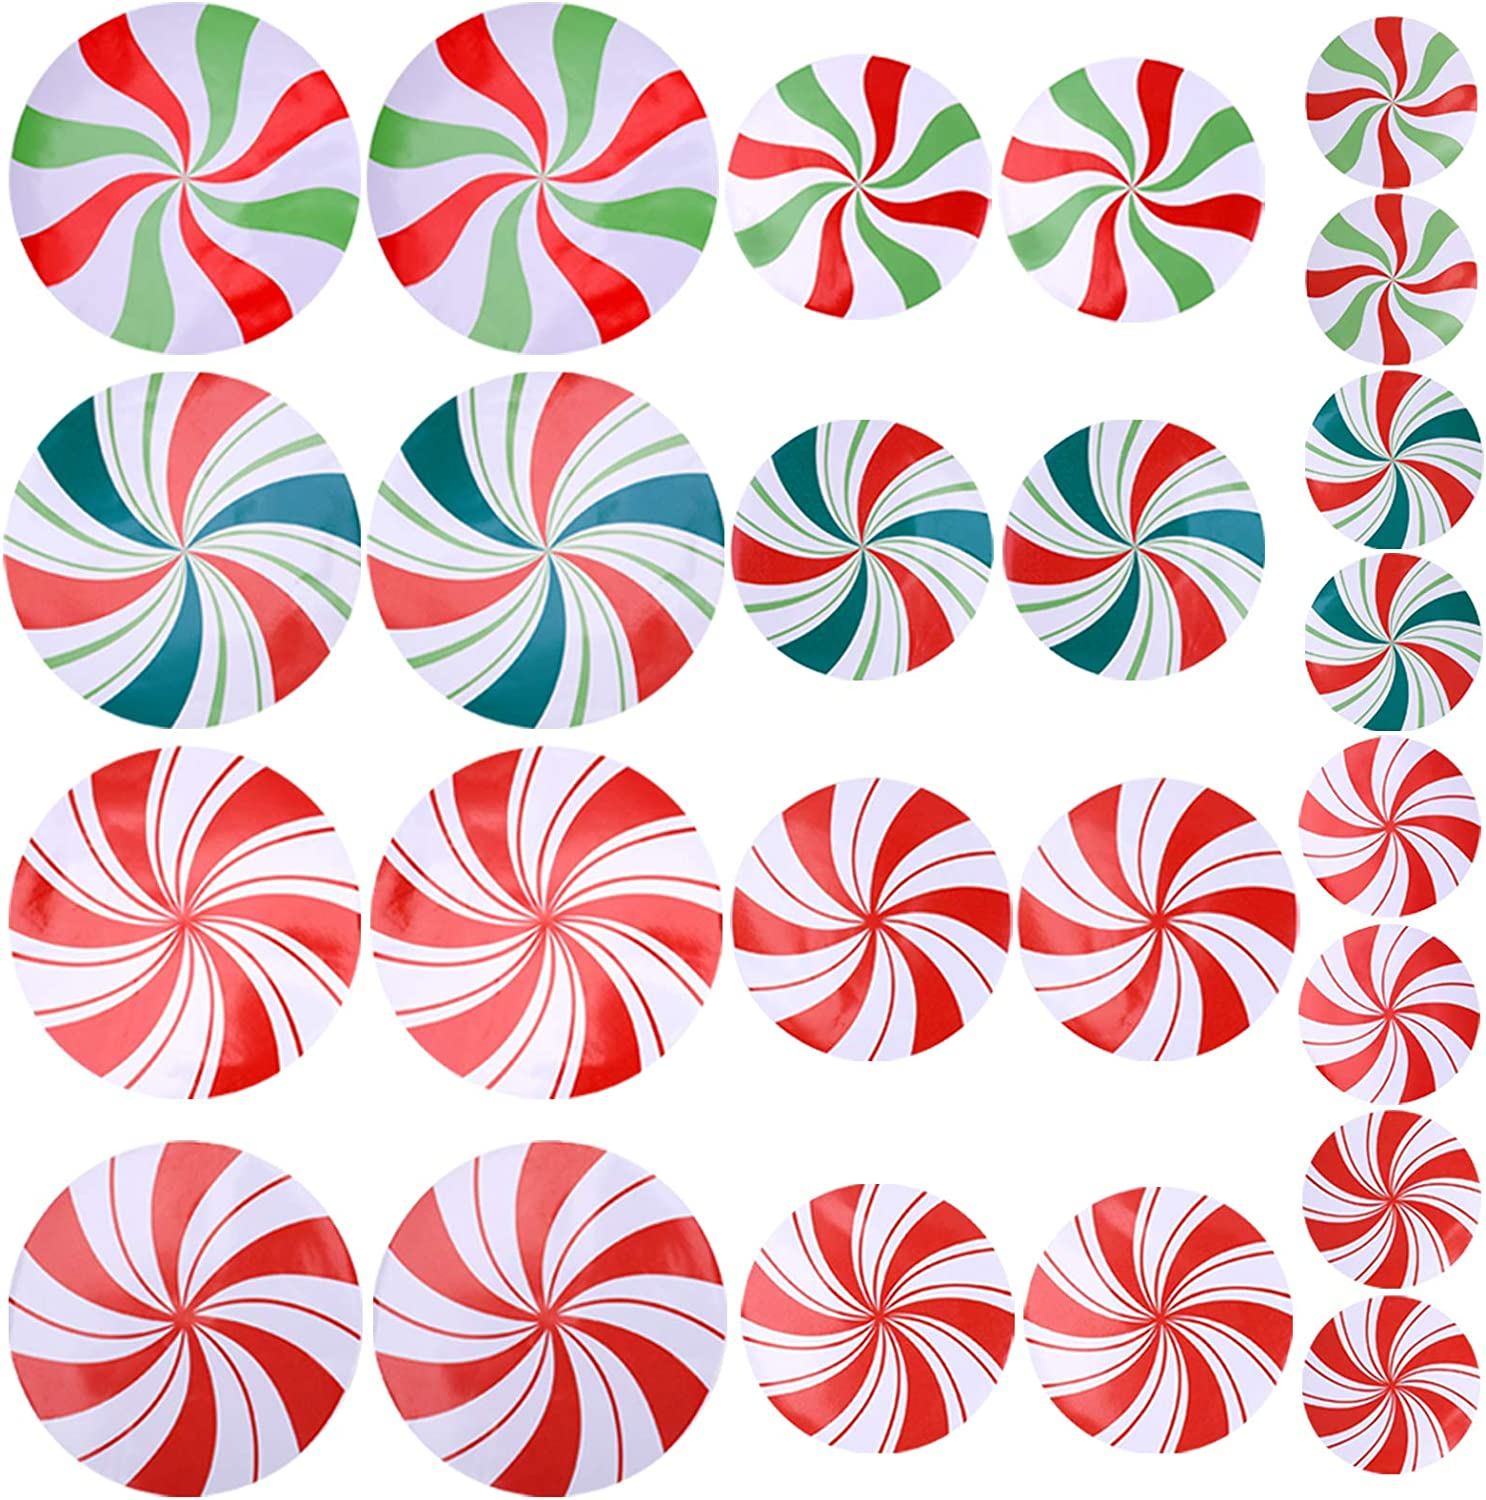 Suwimut 24 Pieces Peppermint Floor Decals Stickers for Christmas Decoration, Candy Party Wall Decals Stickers Decor and Supply